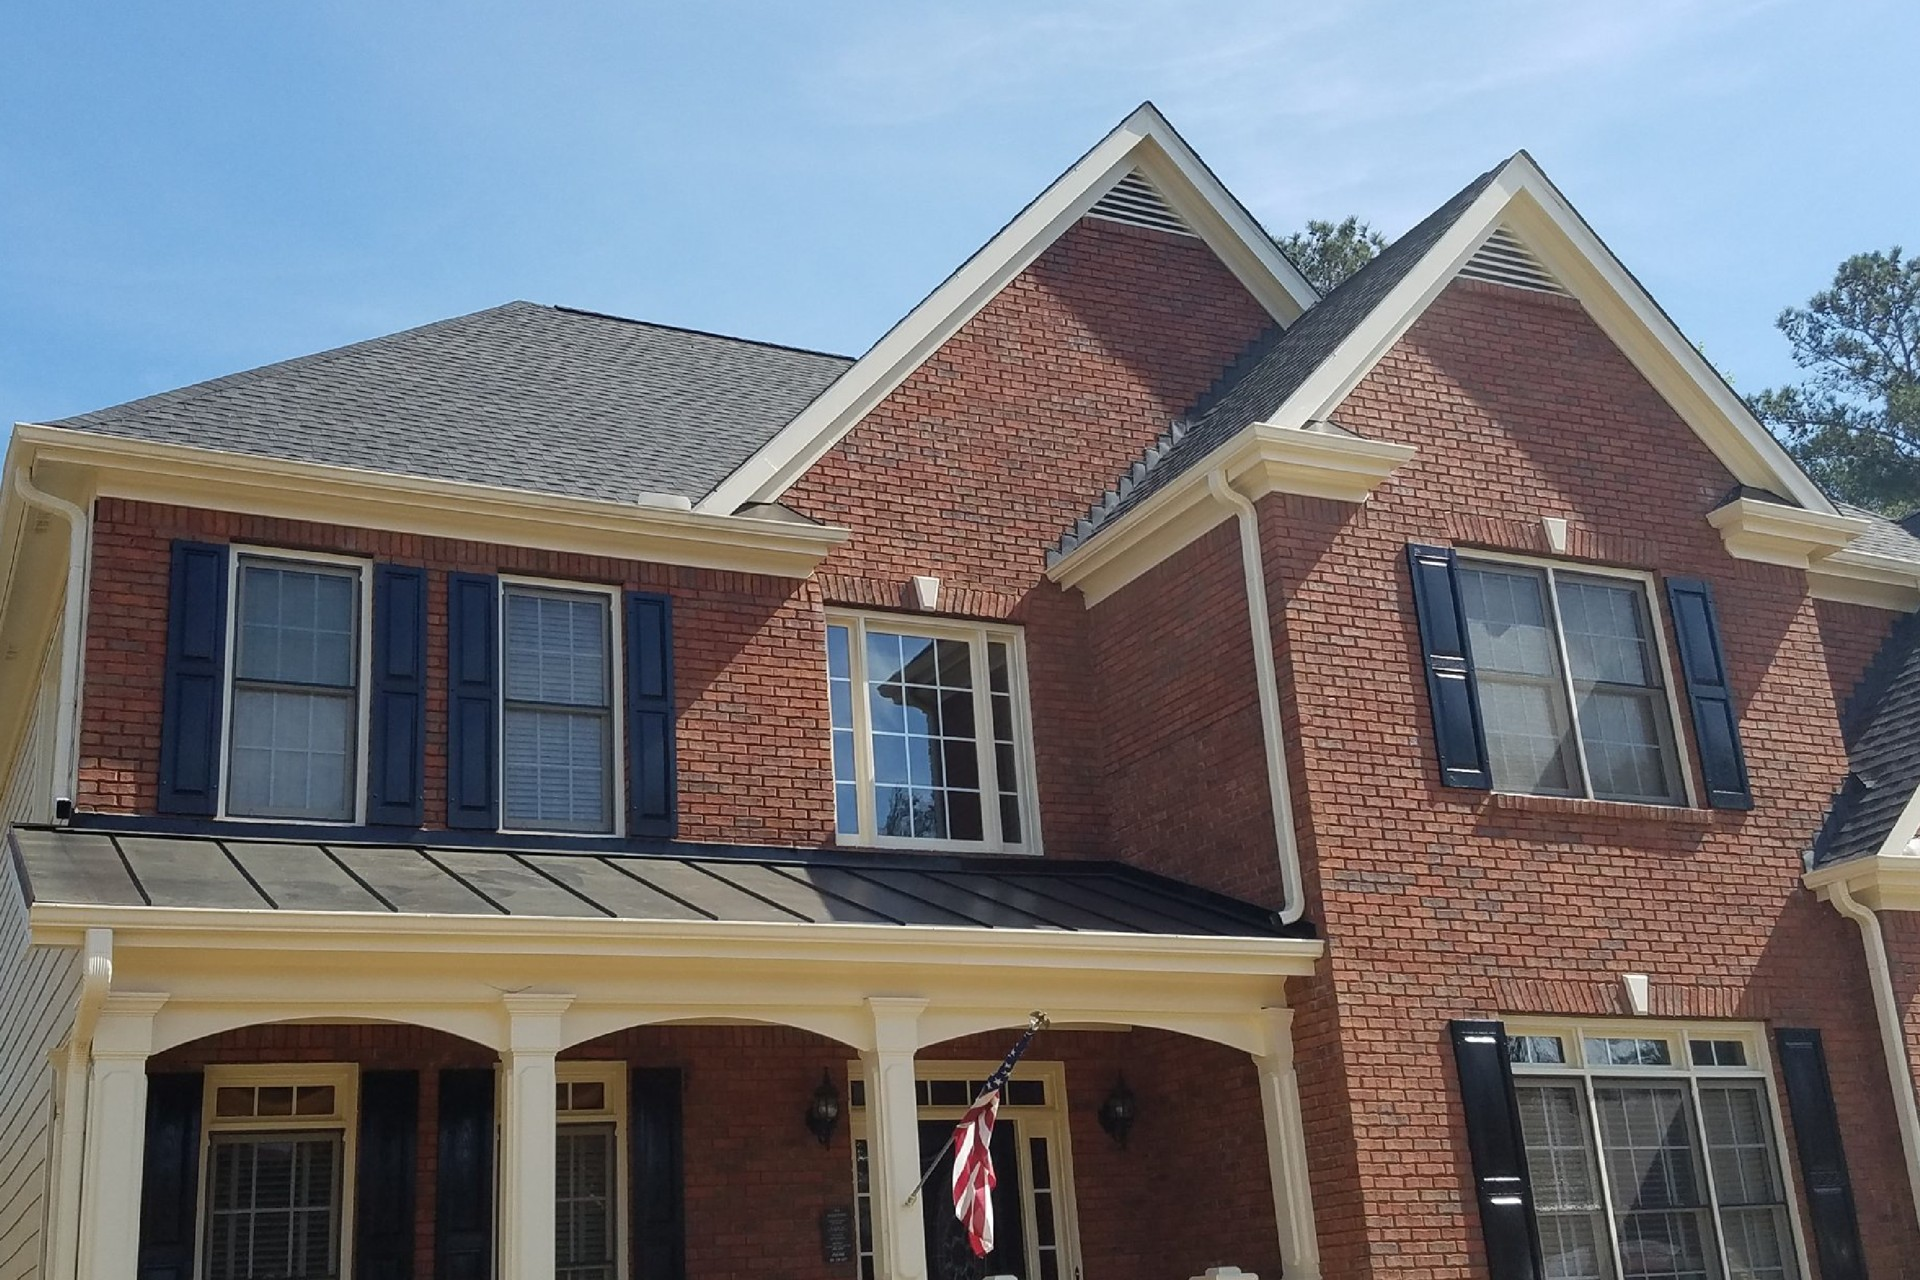 Mancilla Roofing Construction Roof Replacement Repair Home Electrical Wiring In Metro Atlanta Esystems Inc Cumming Ga 17